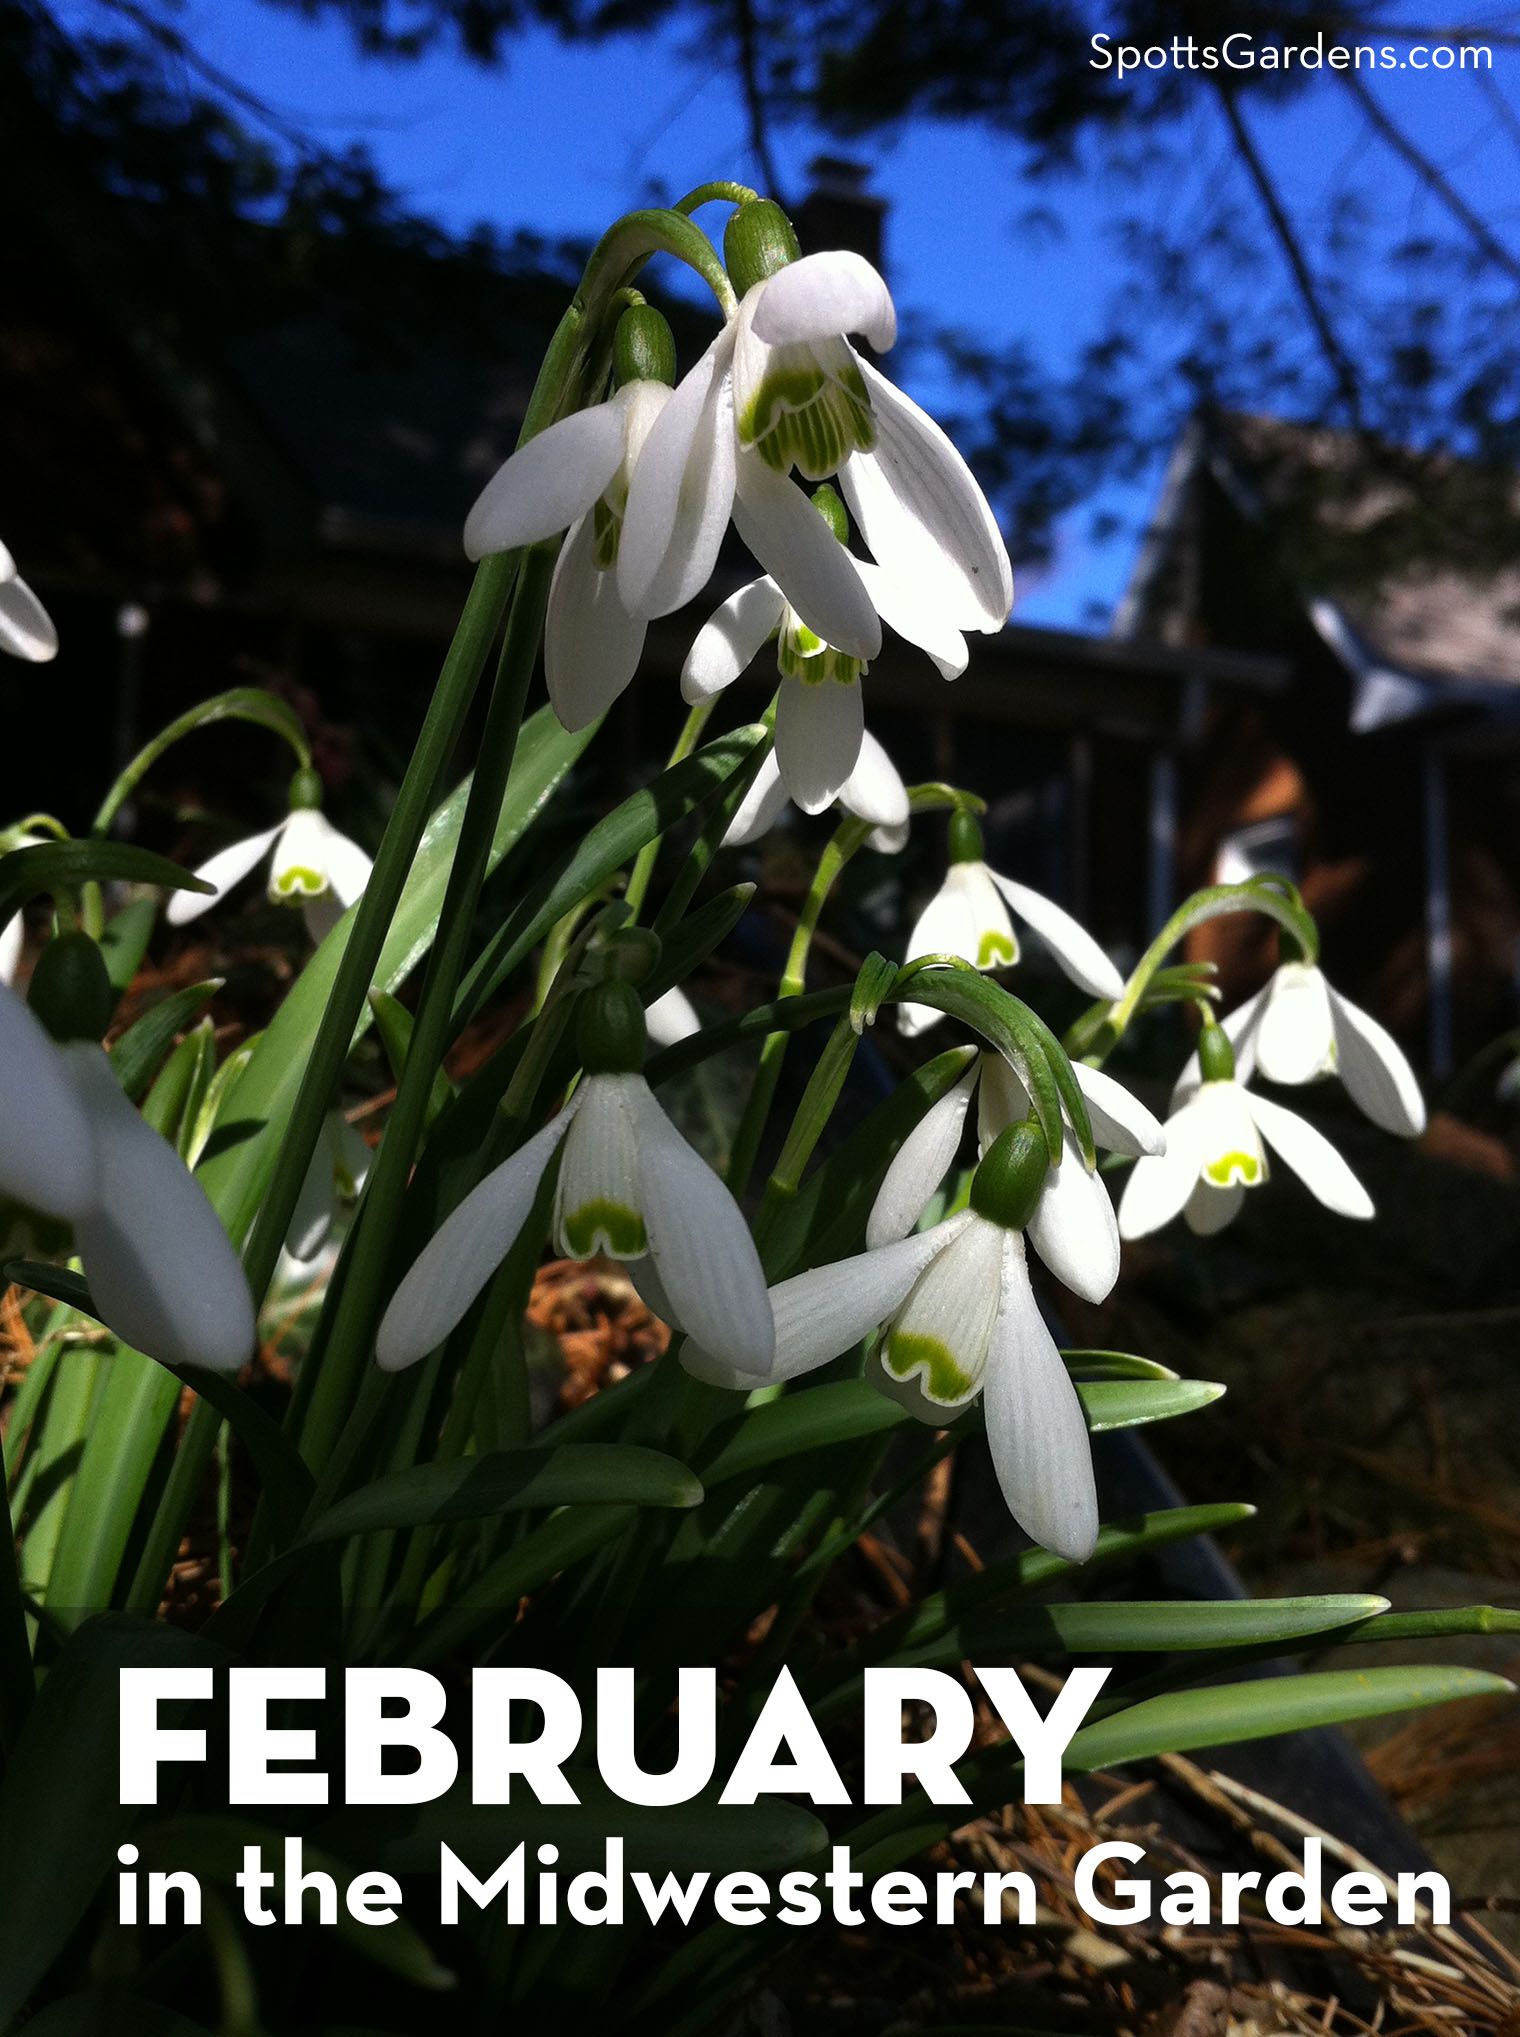 February in the Midwestern Garden